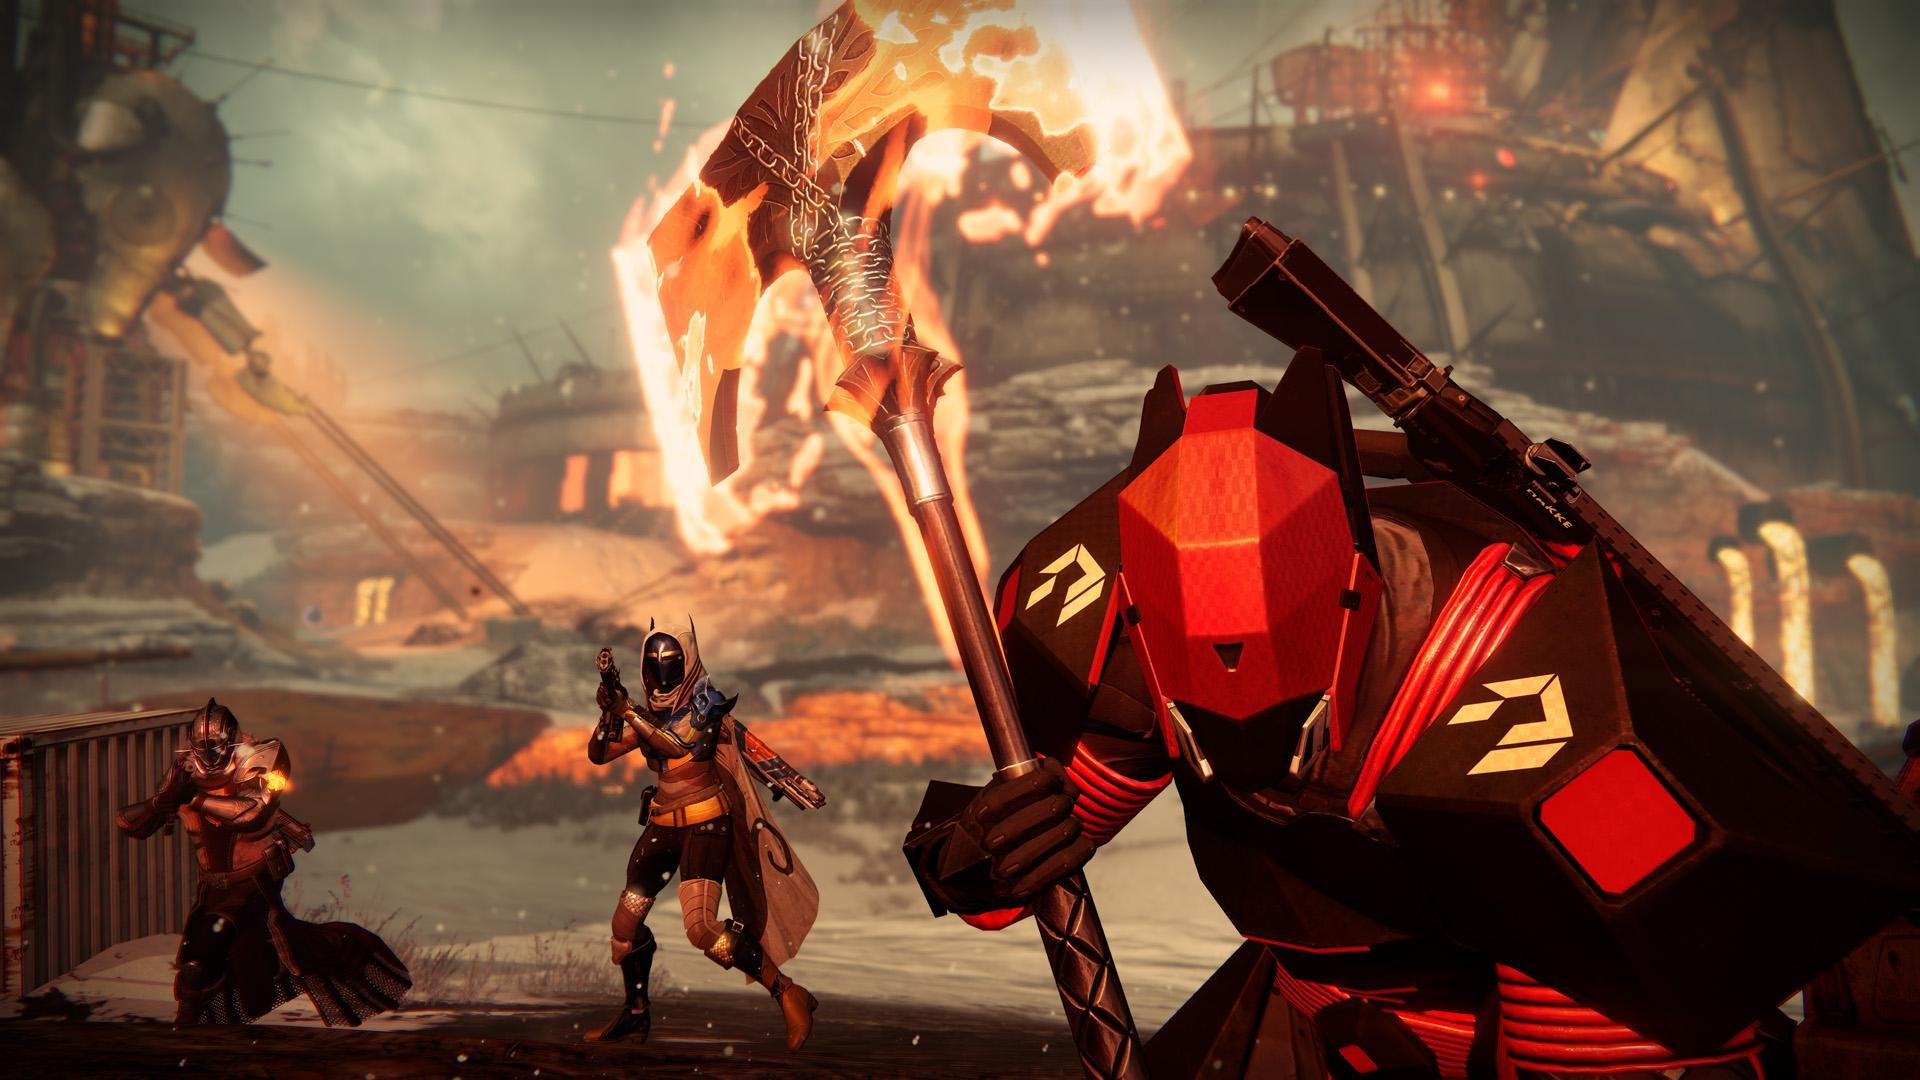 Destiny: Rise of Iron will feature two new PvP maps